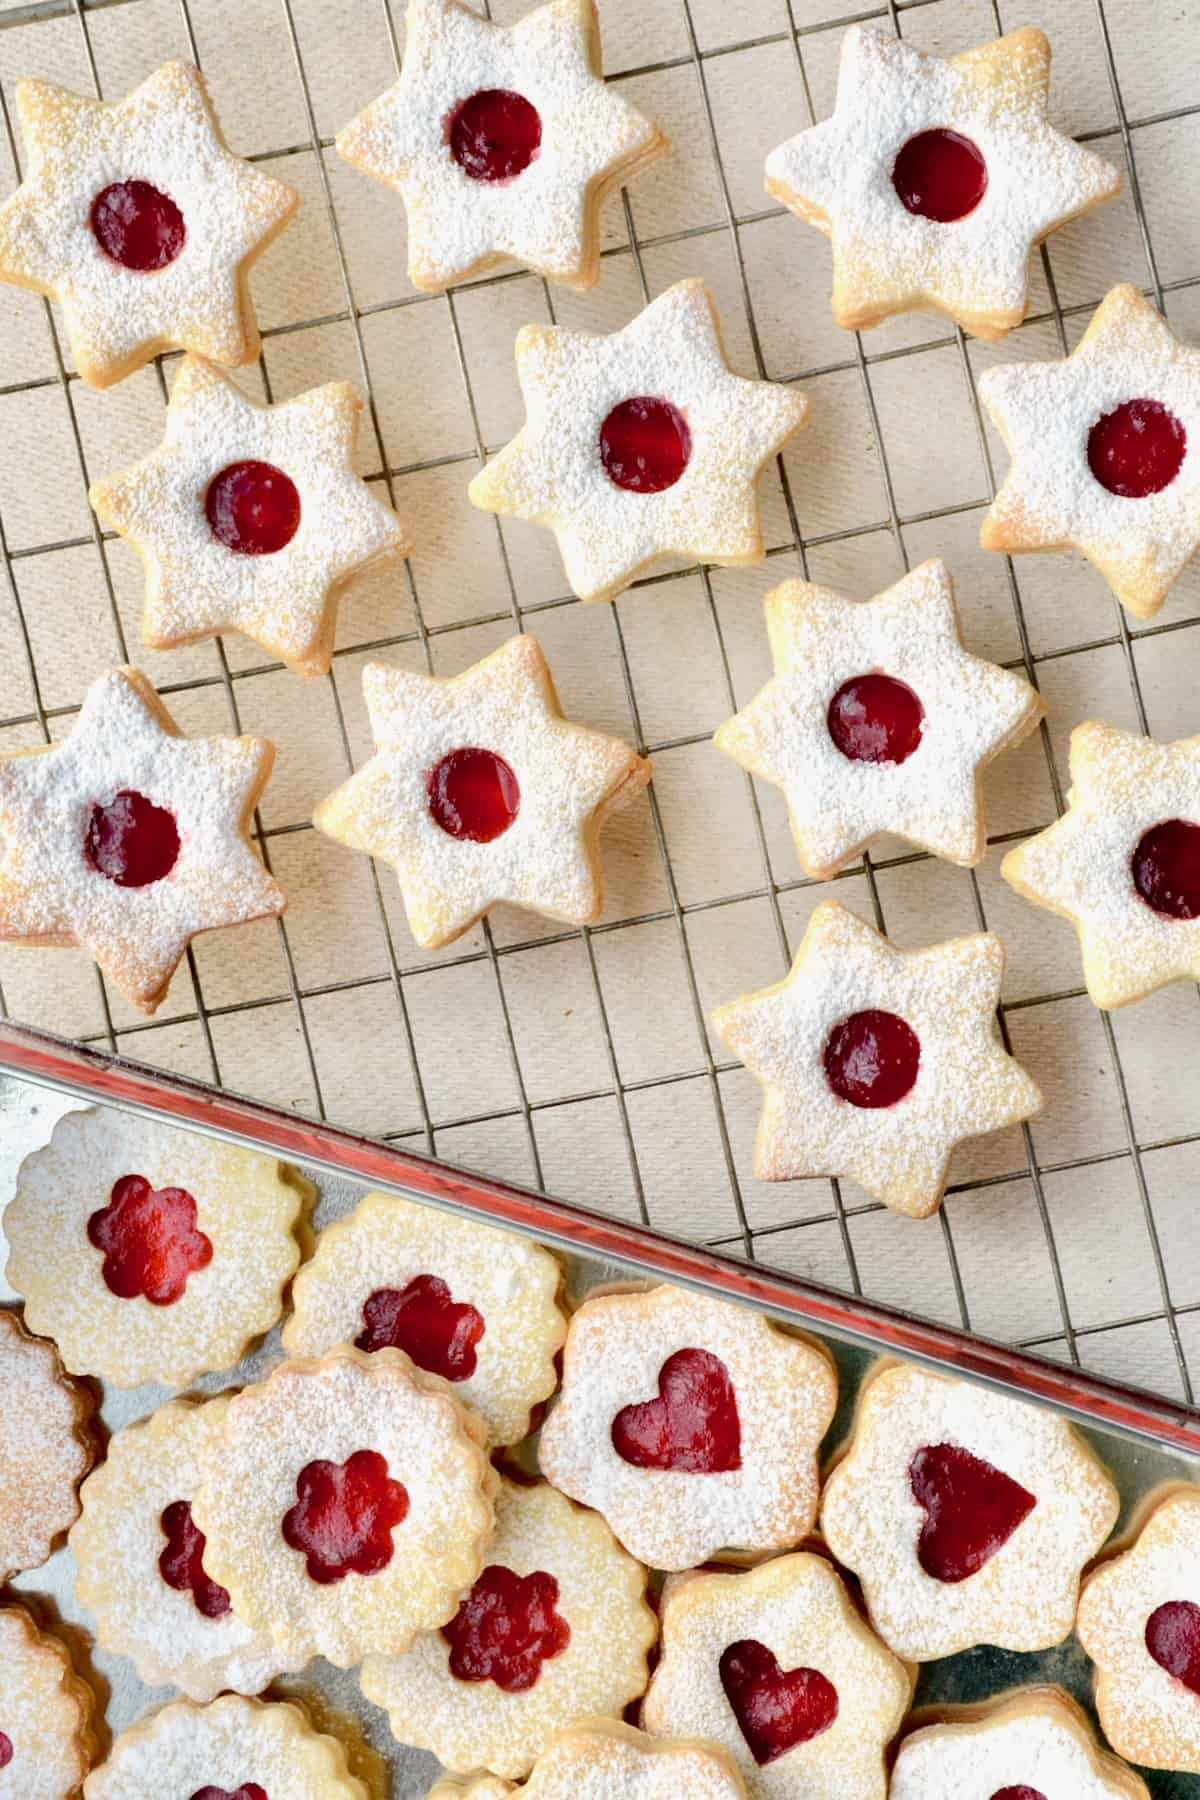 Linzer cookies can come in various different shapes: Stars, flowers, circles and more. But they all have a small opening in the top cookie layer, through which the jam filling can be observed.